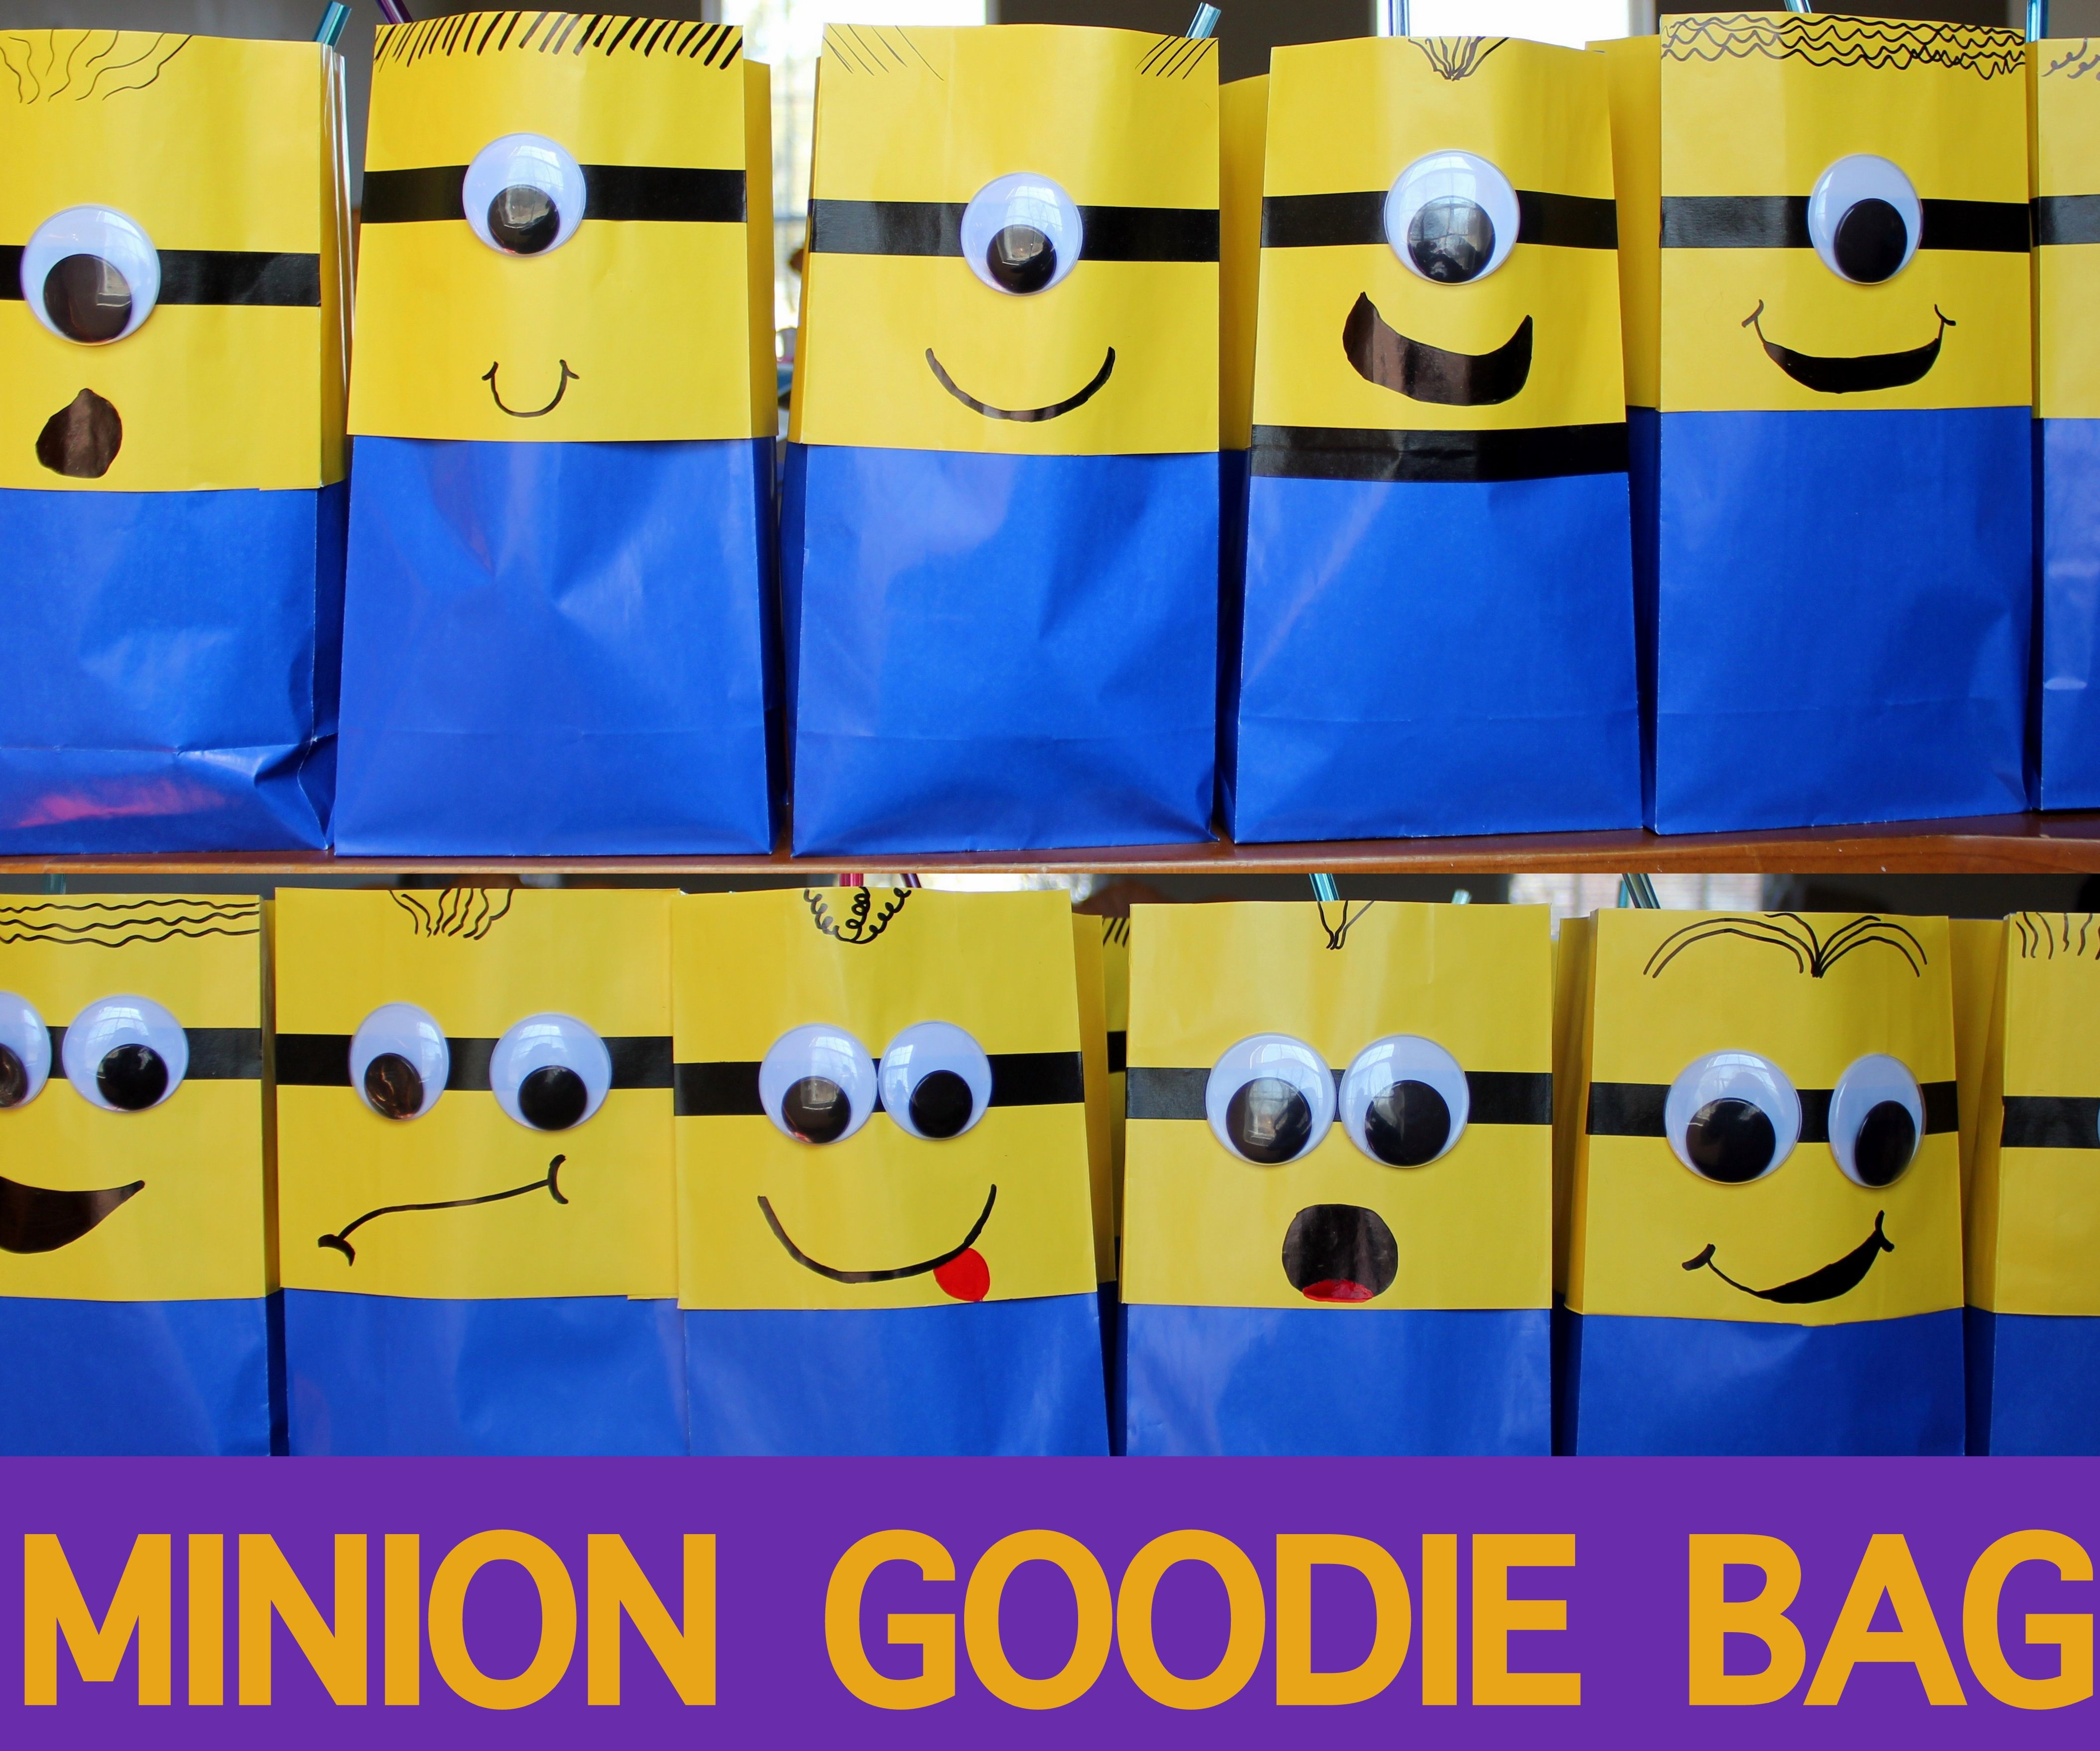 Minion Goodie Bags from Despicable Me